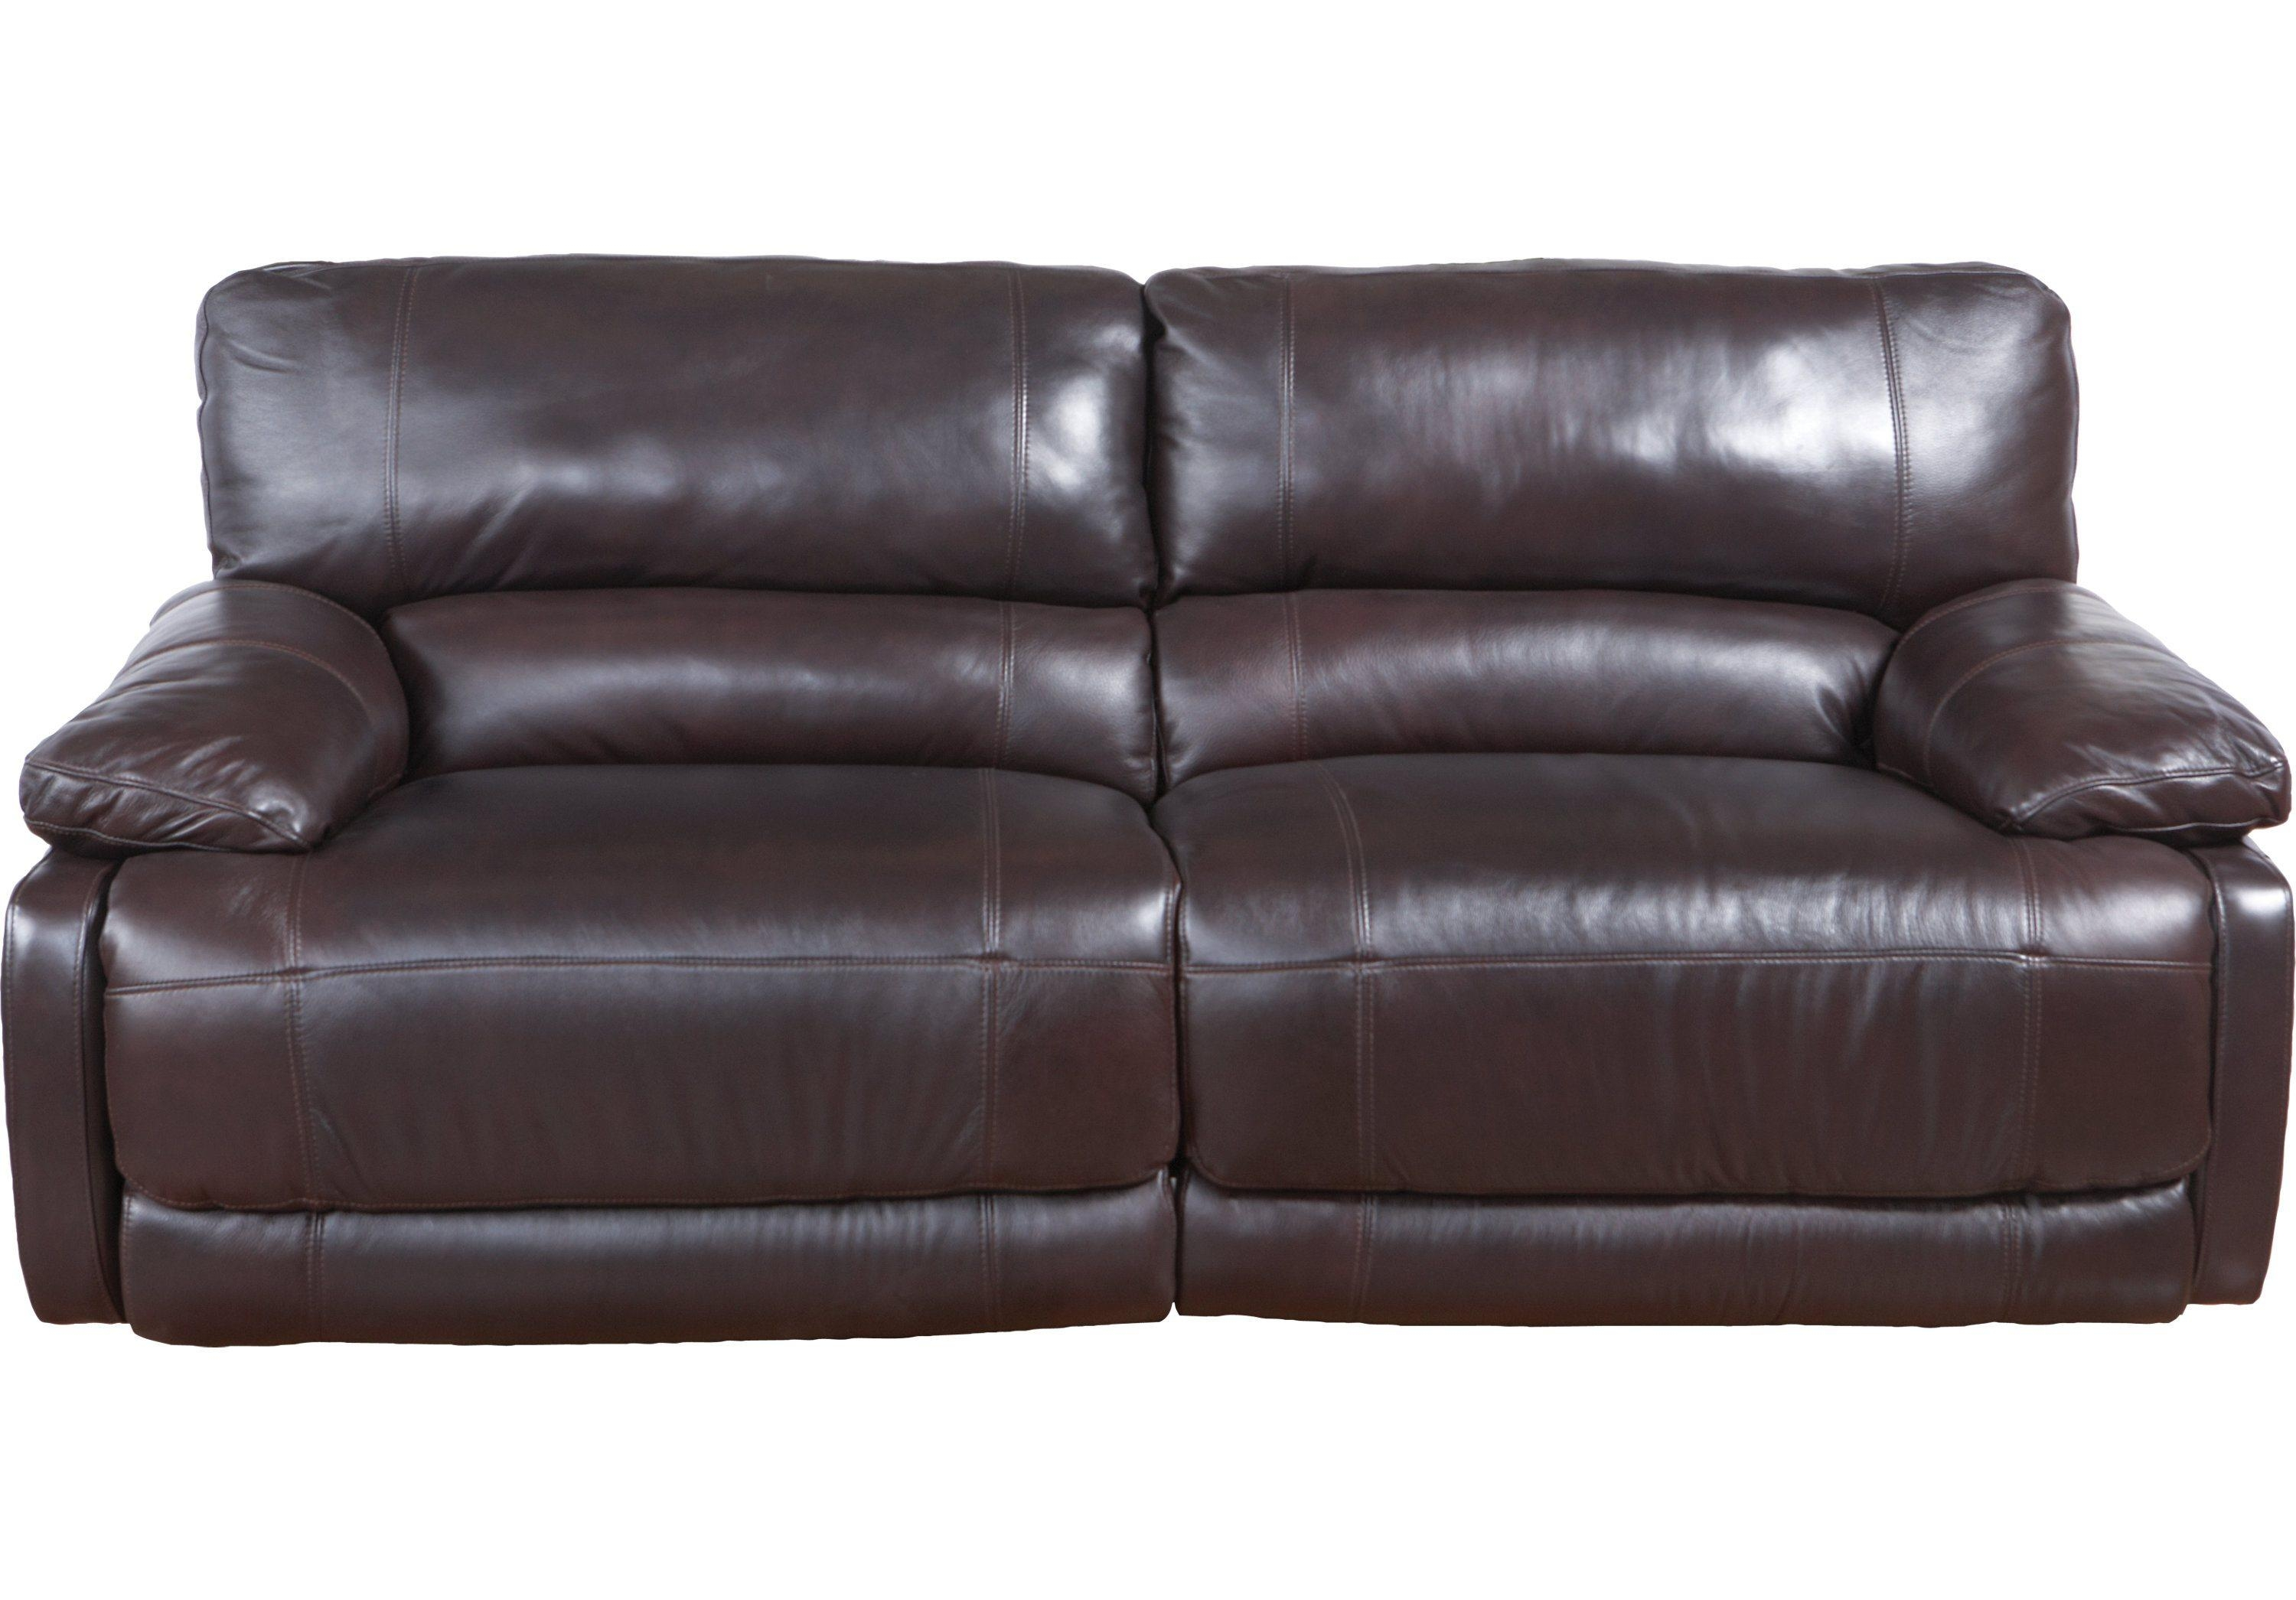 Sofas Center : Cindy Crawford Sectional Metropolis Sofa Sleeper Regarding Cindy Crawford Sleeper Sofas (View 15 of 20)